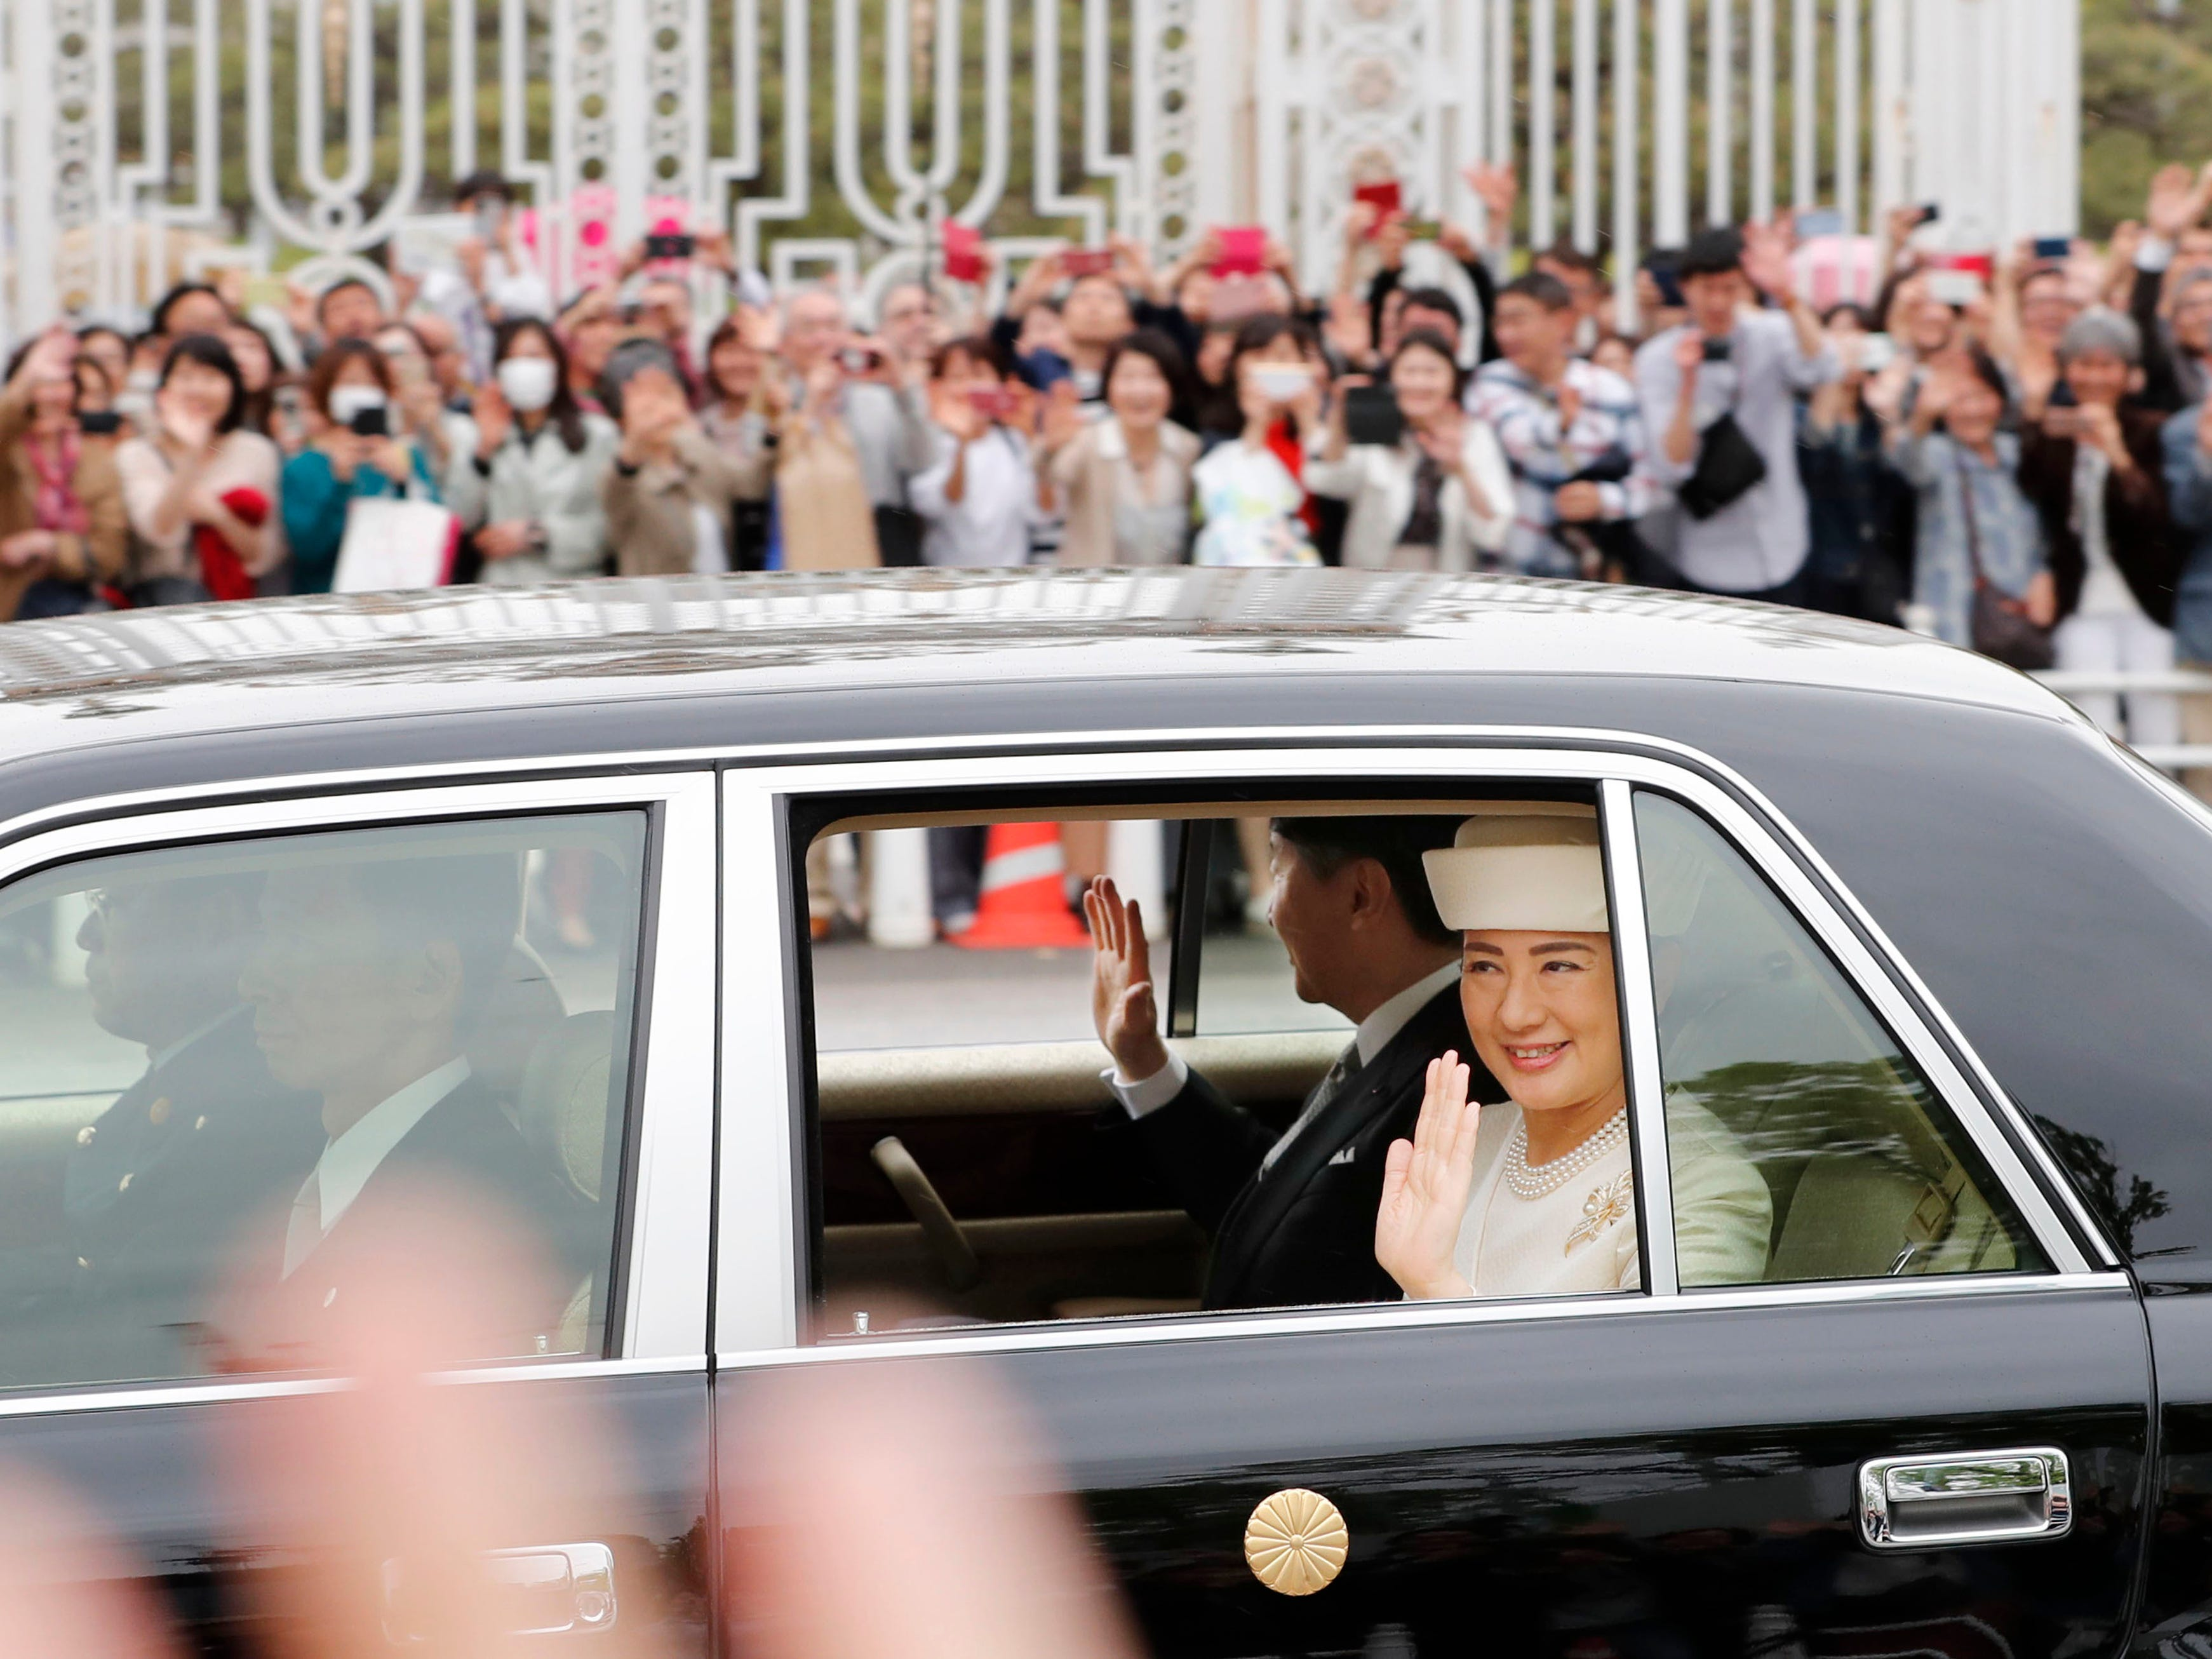 People gather as the car carrying new Emperor Naruhito and Empress Masako passes near state guest house in Tokyo Wednesday, May 1, 2019. Naruhito inherited the sacred sword and jewel that signaled his succession and pledged in his first public address Wednesday to follow his father's example by devoting himself to peace and sharing the people's joys and sorrows.